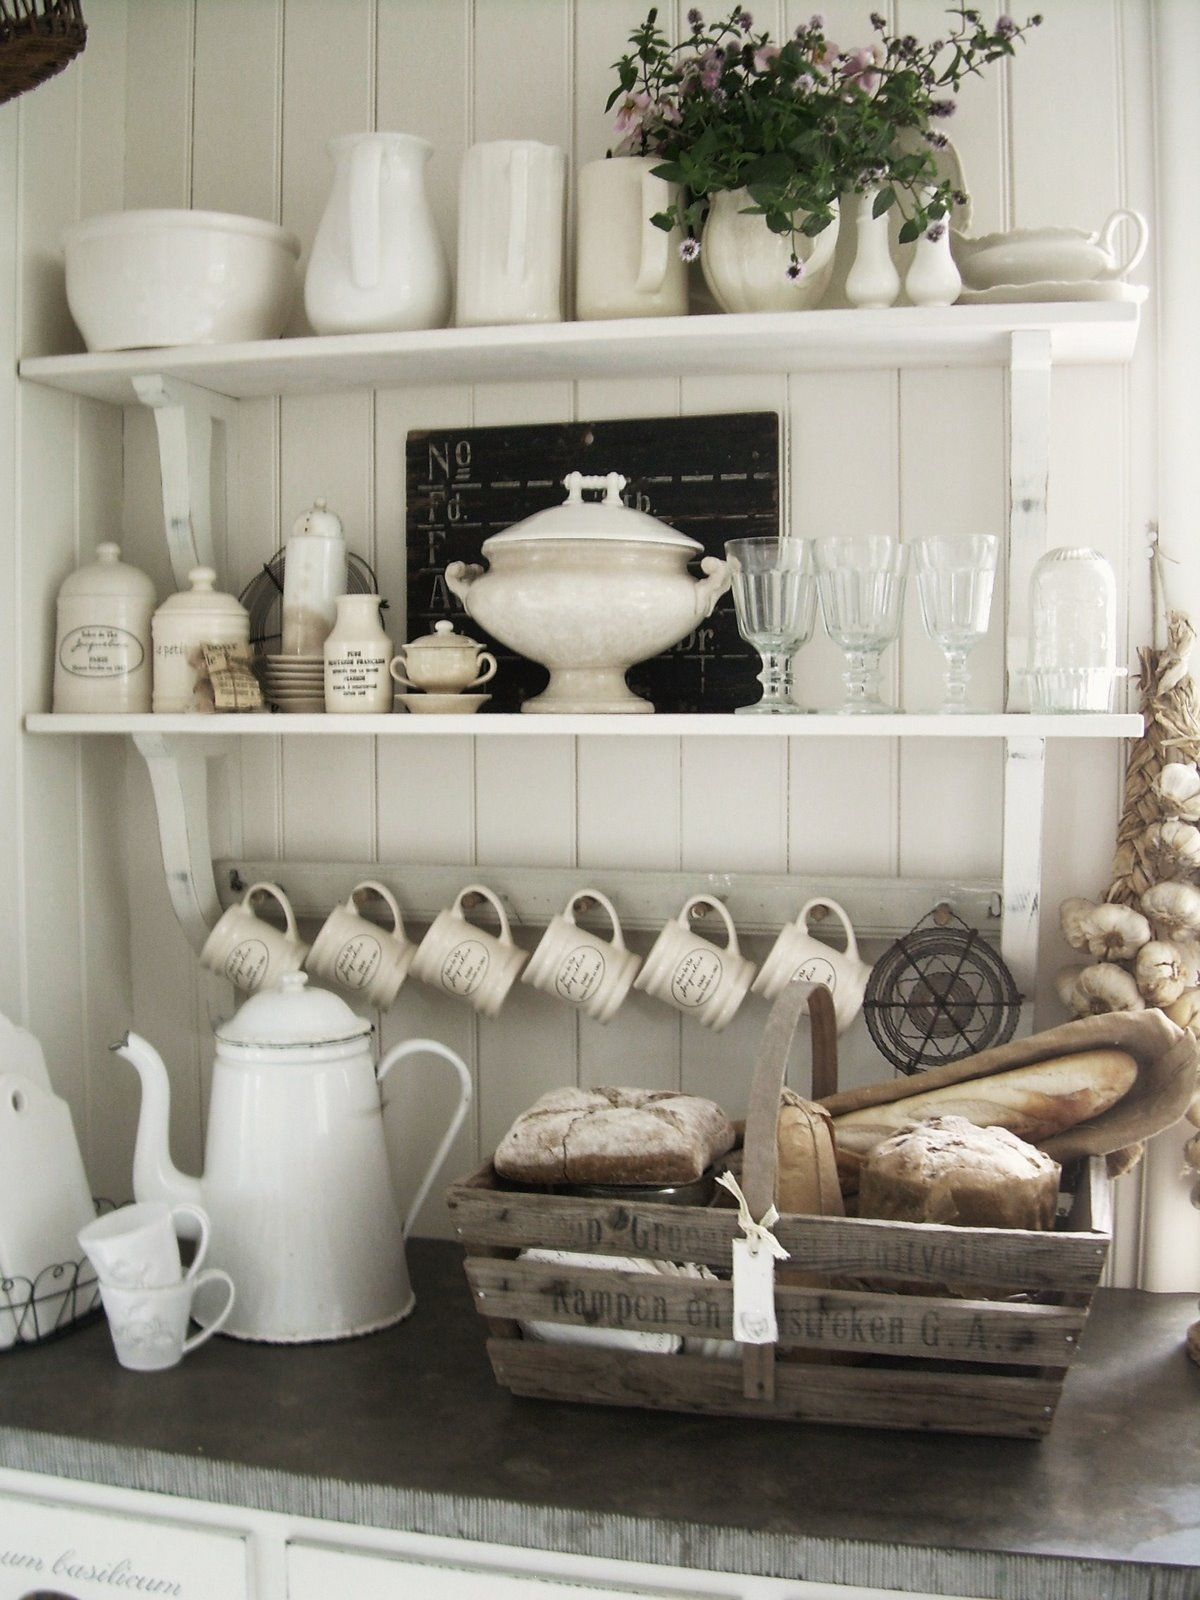 kitchen shelves and mug hooks